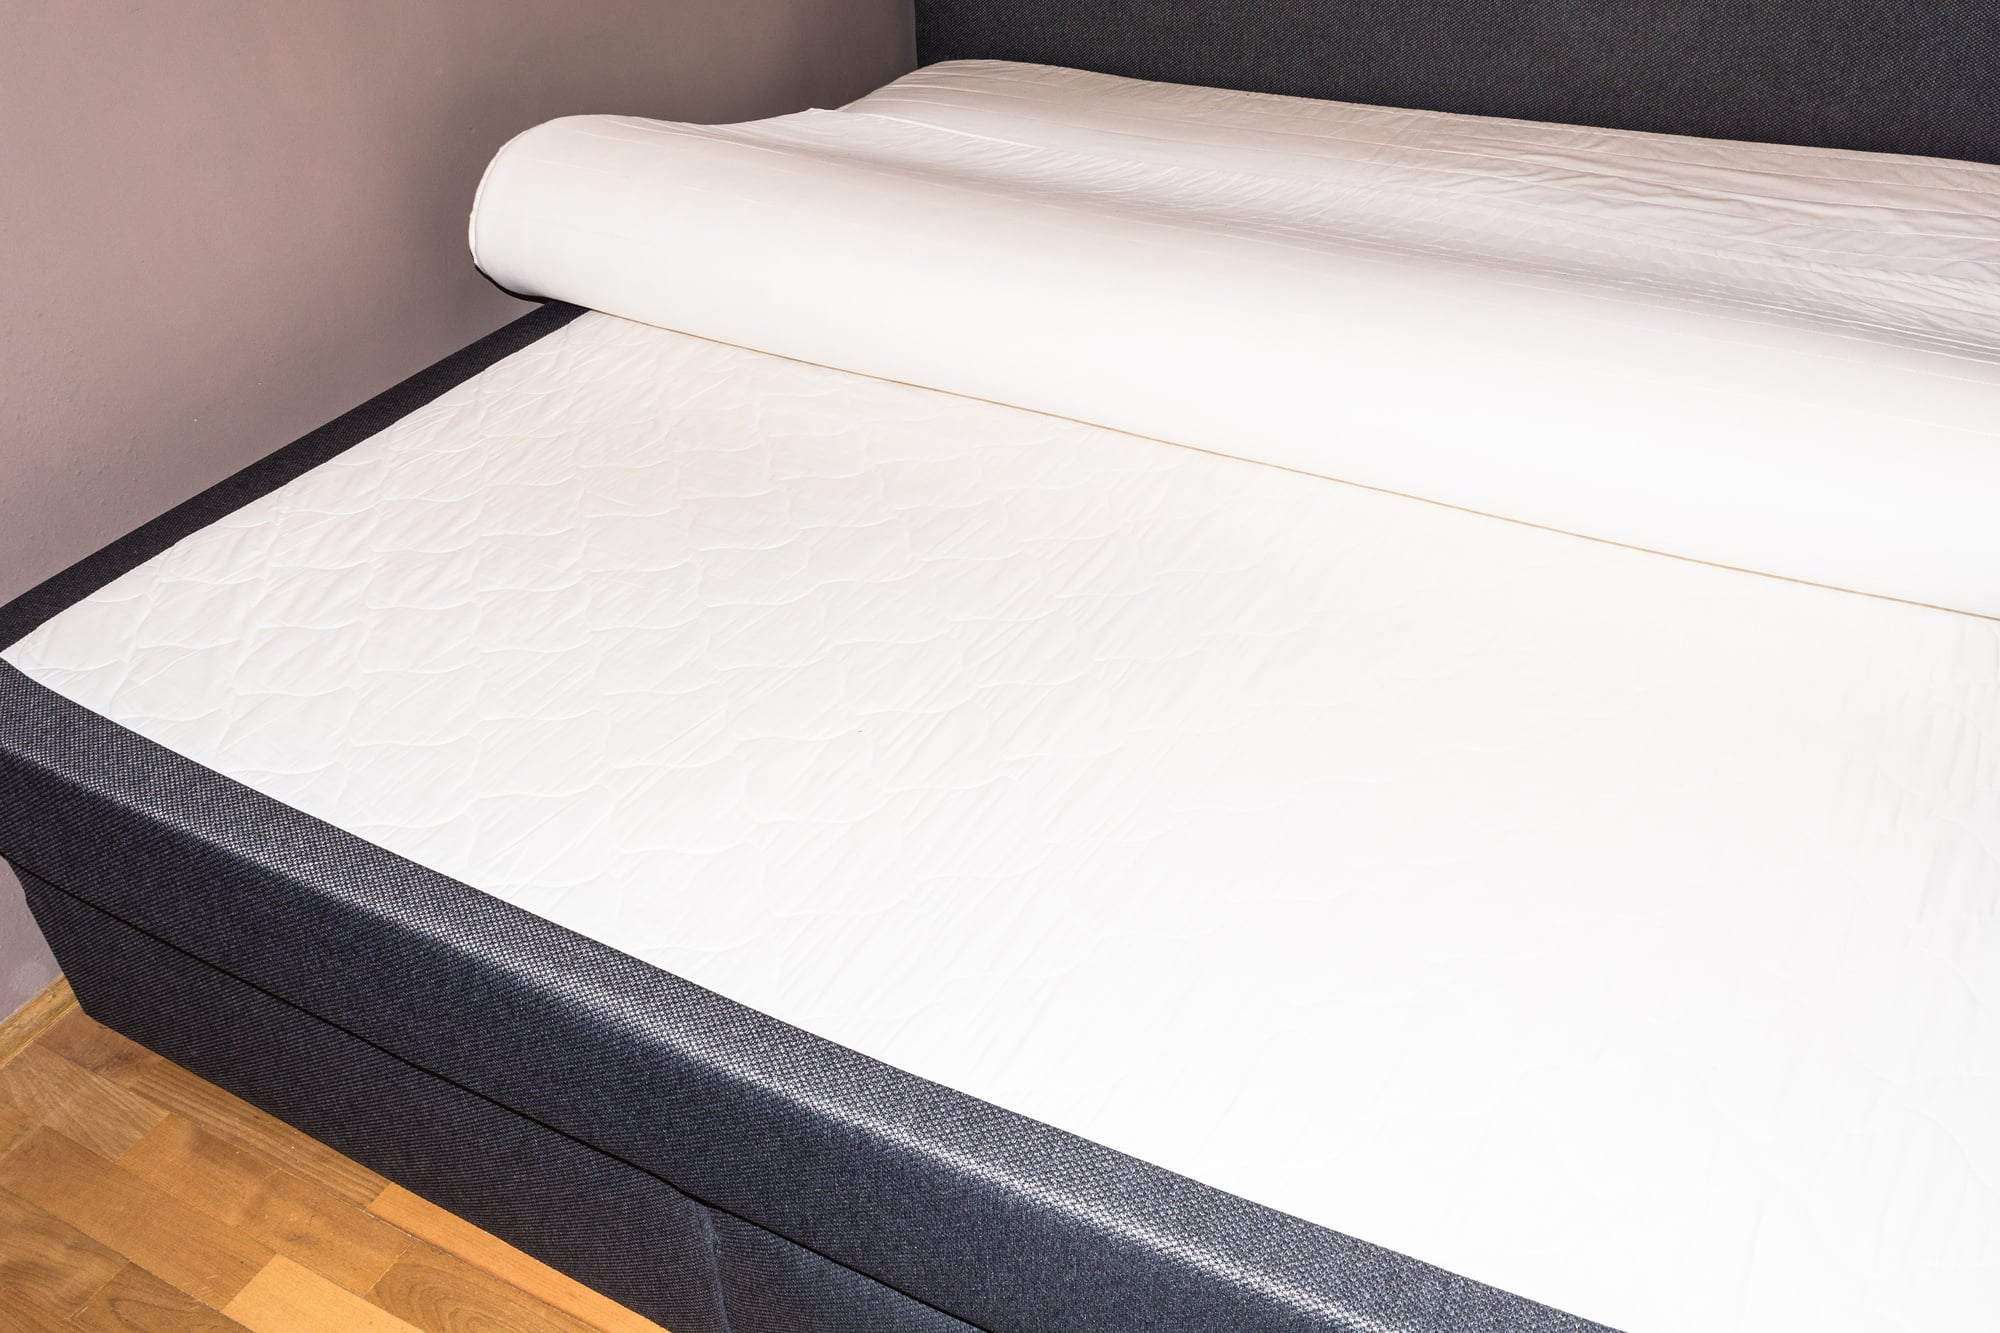 Best Traditional Mattress What Is The Best Mattress Topper For Side Sleepers In 2019 Top 5